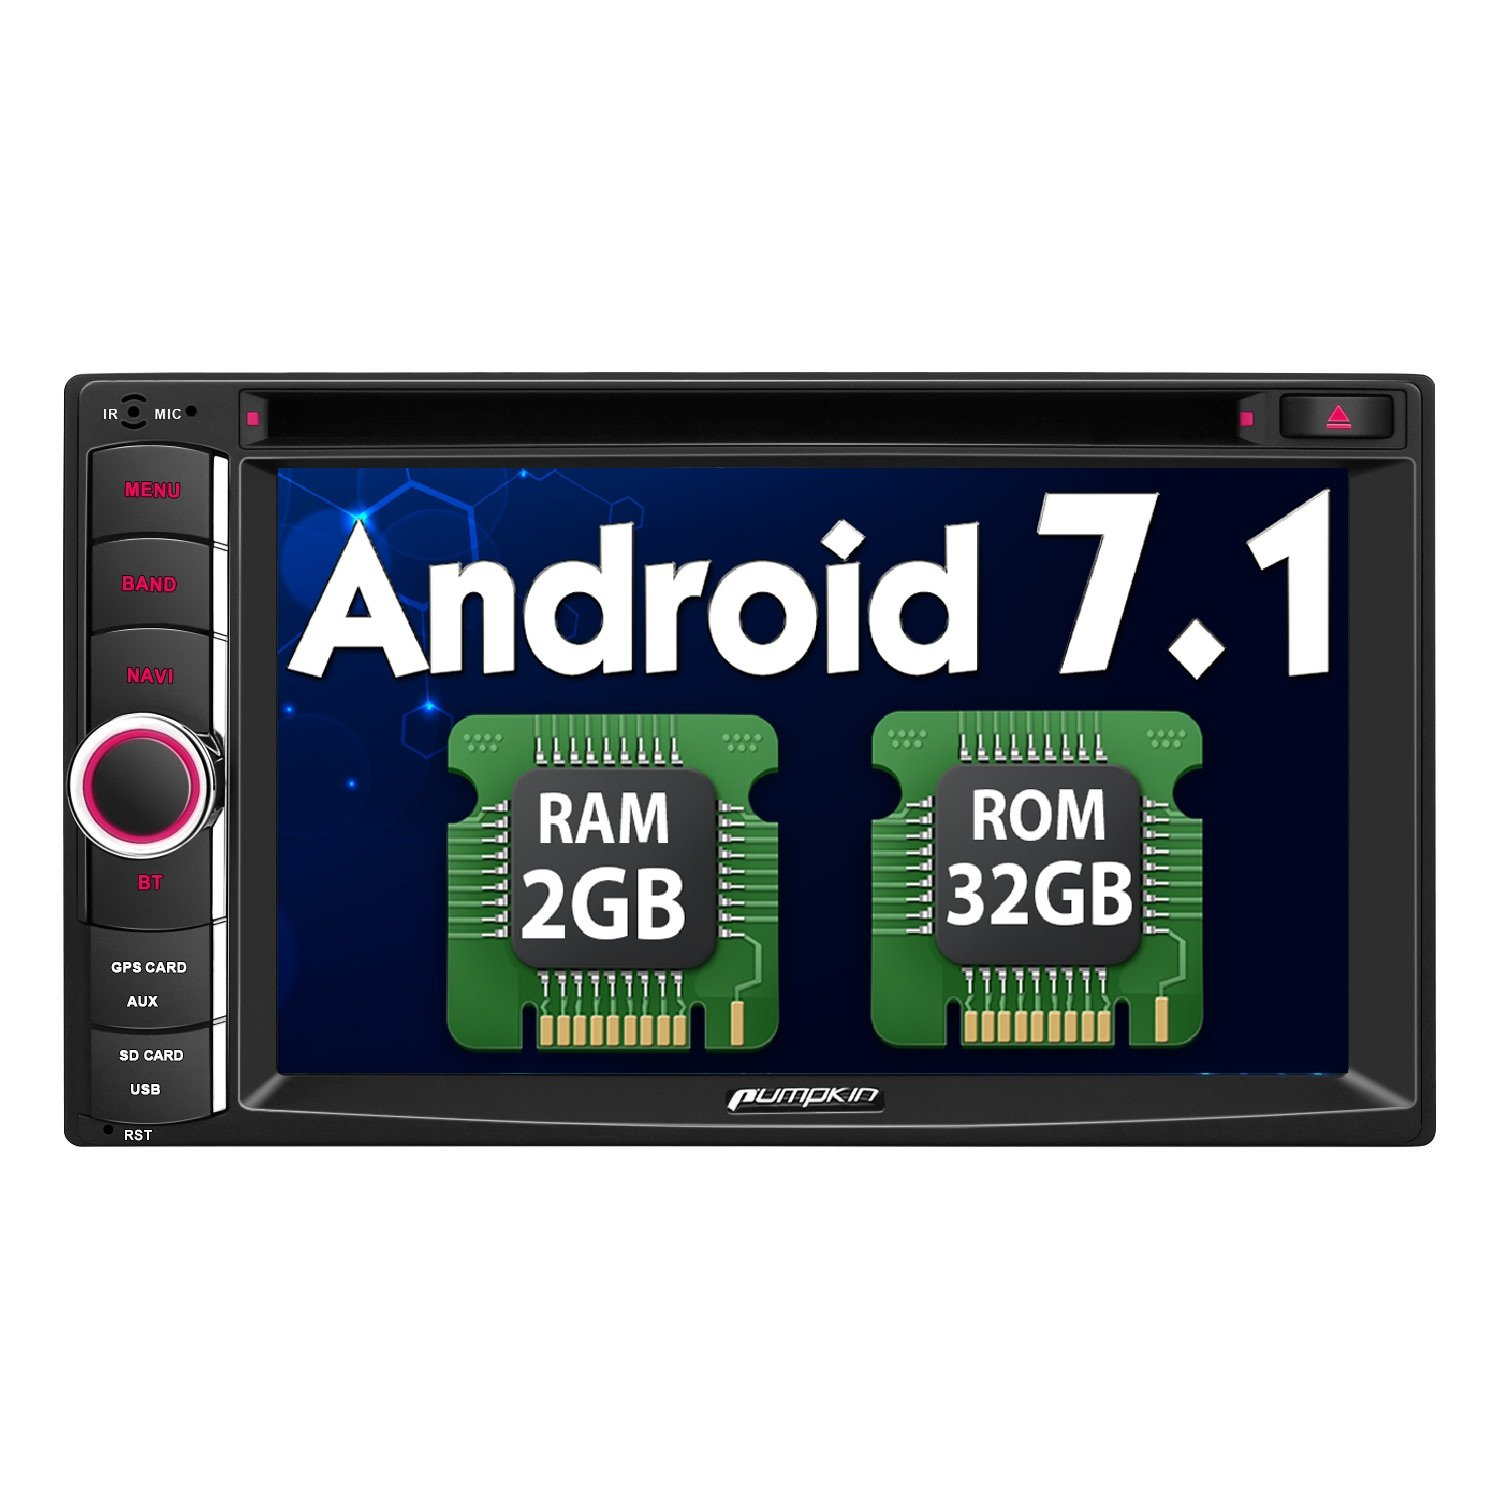 Android 7.1 Head Unit Double Din, Octa Core 32GB+ 2GB Car Stereo DVD CD Player with Navigation, Support Android Auto, Bluetooth, WIFI, MirrorLink, Backup Camera, AUX, Dash Cam, 6.2 Inch Touch Screen